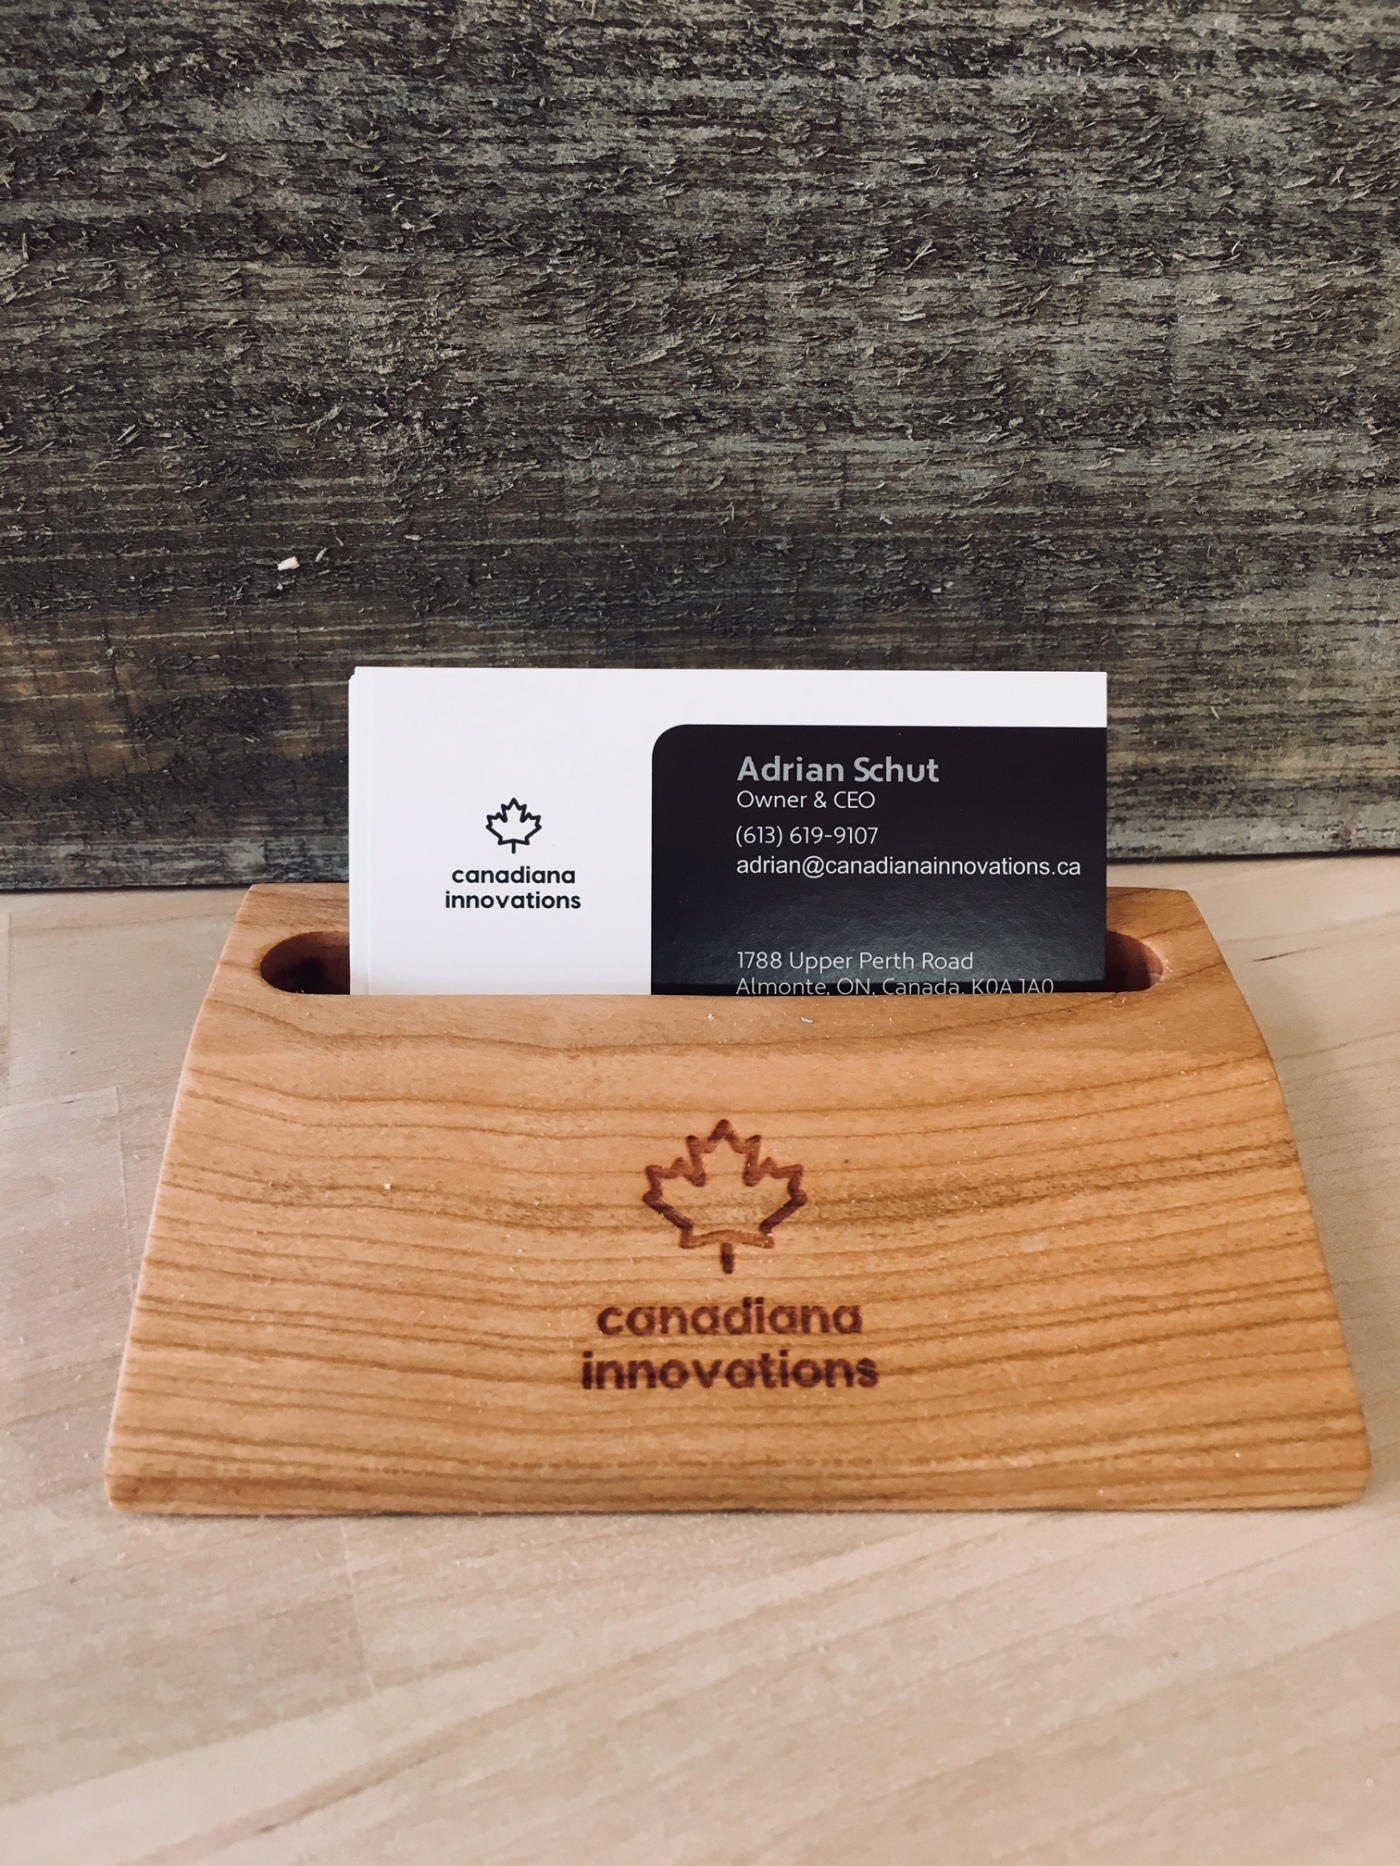 Phone or business card holder made of Canadian hardwood